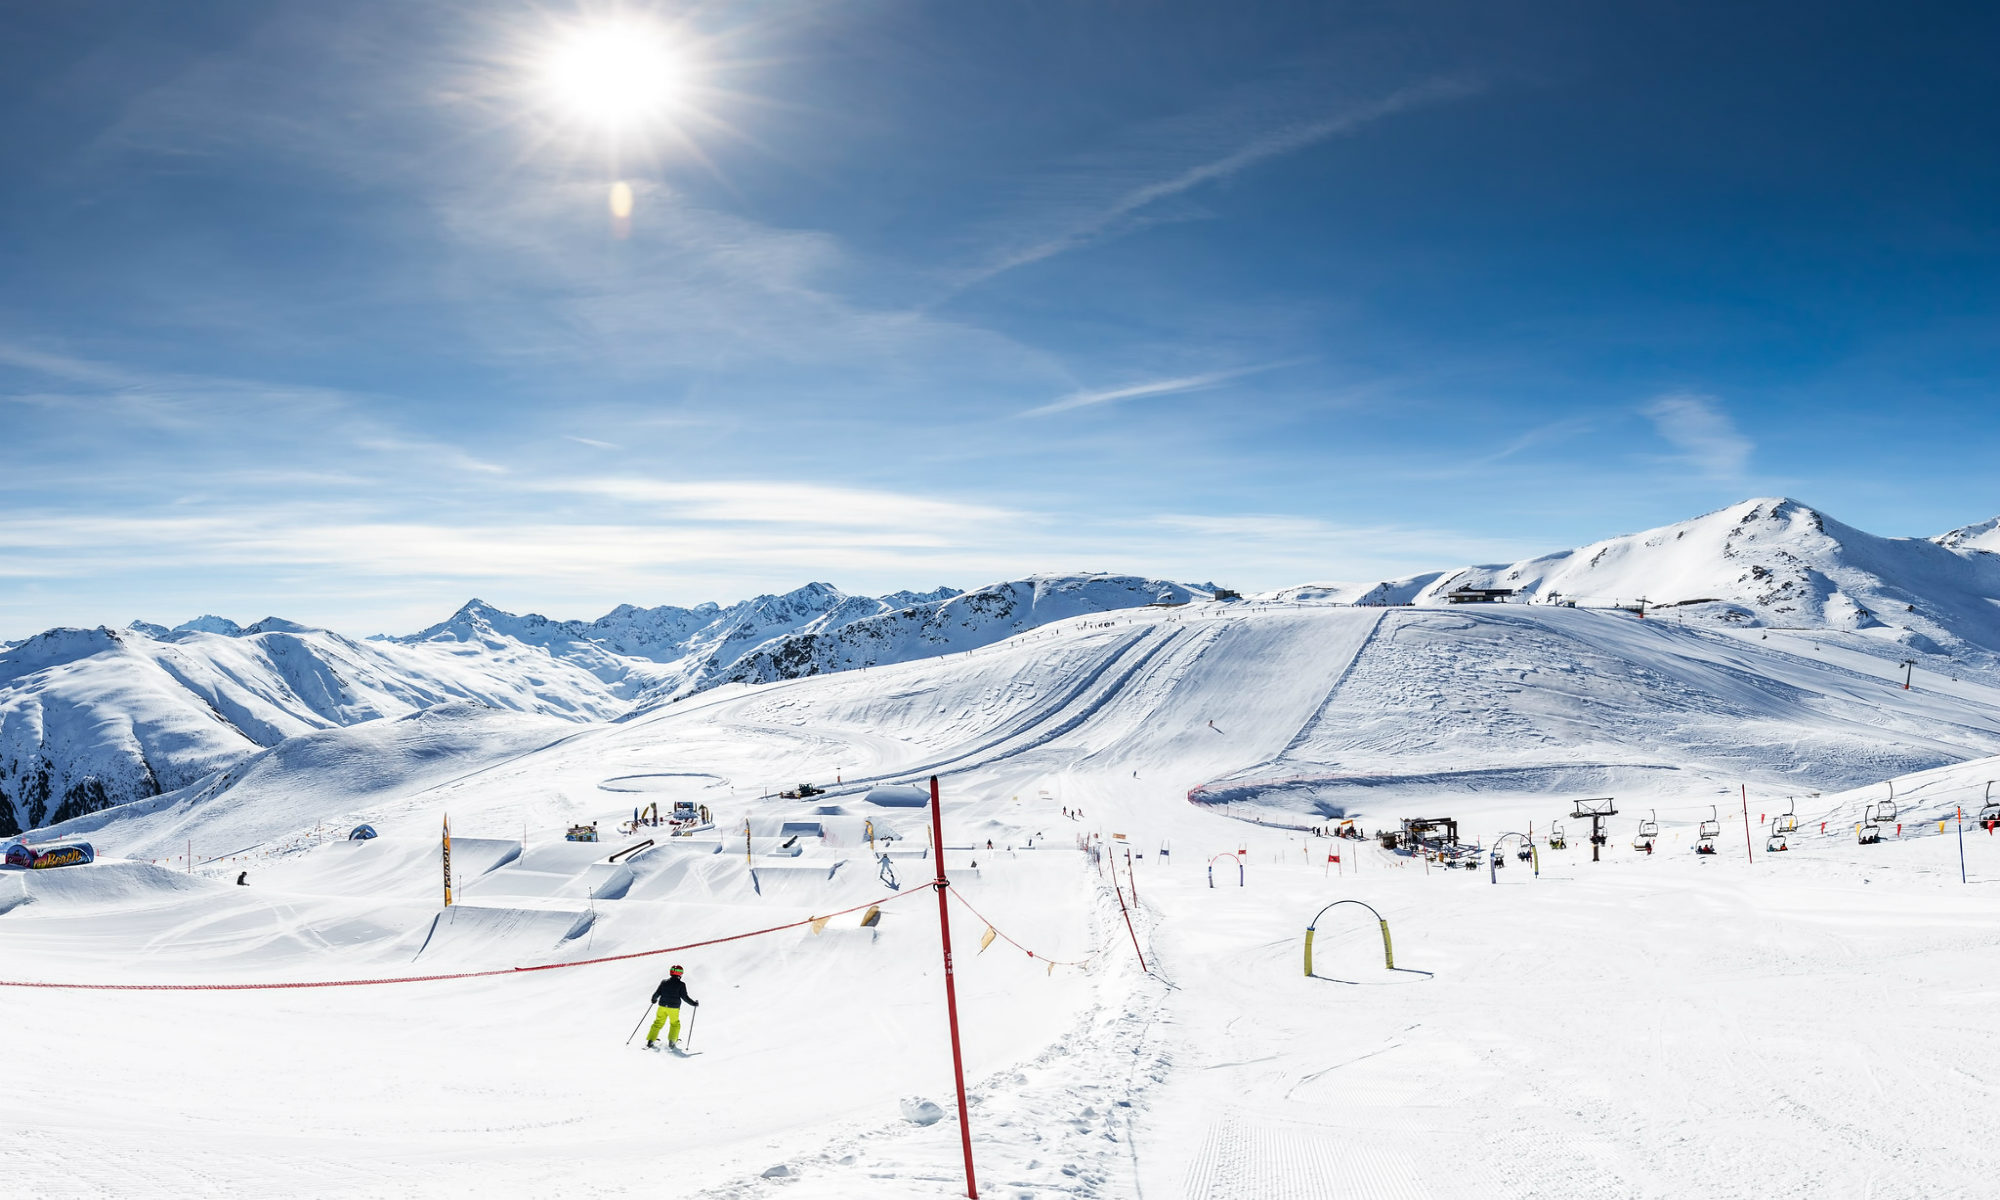 Sunny day view over the snow-sure slopes of Livigno.